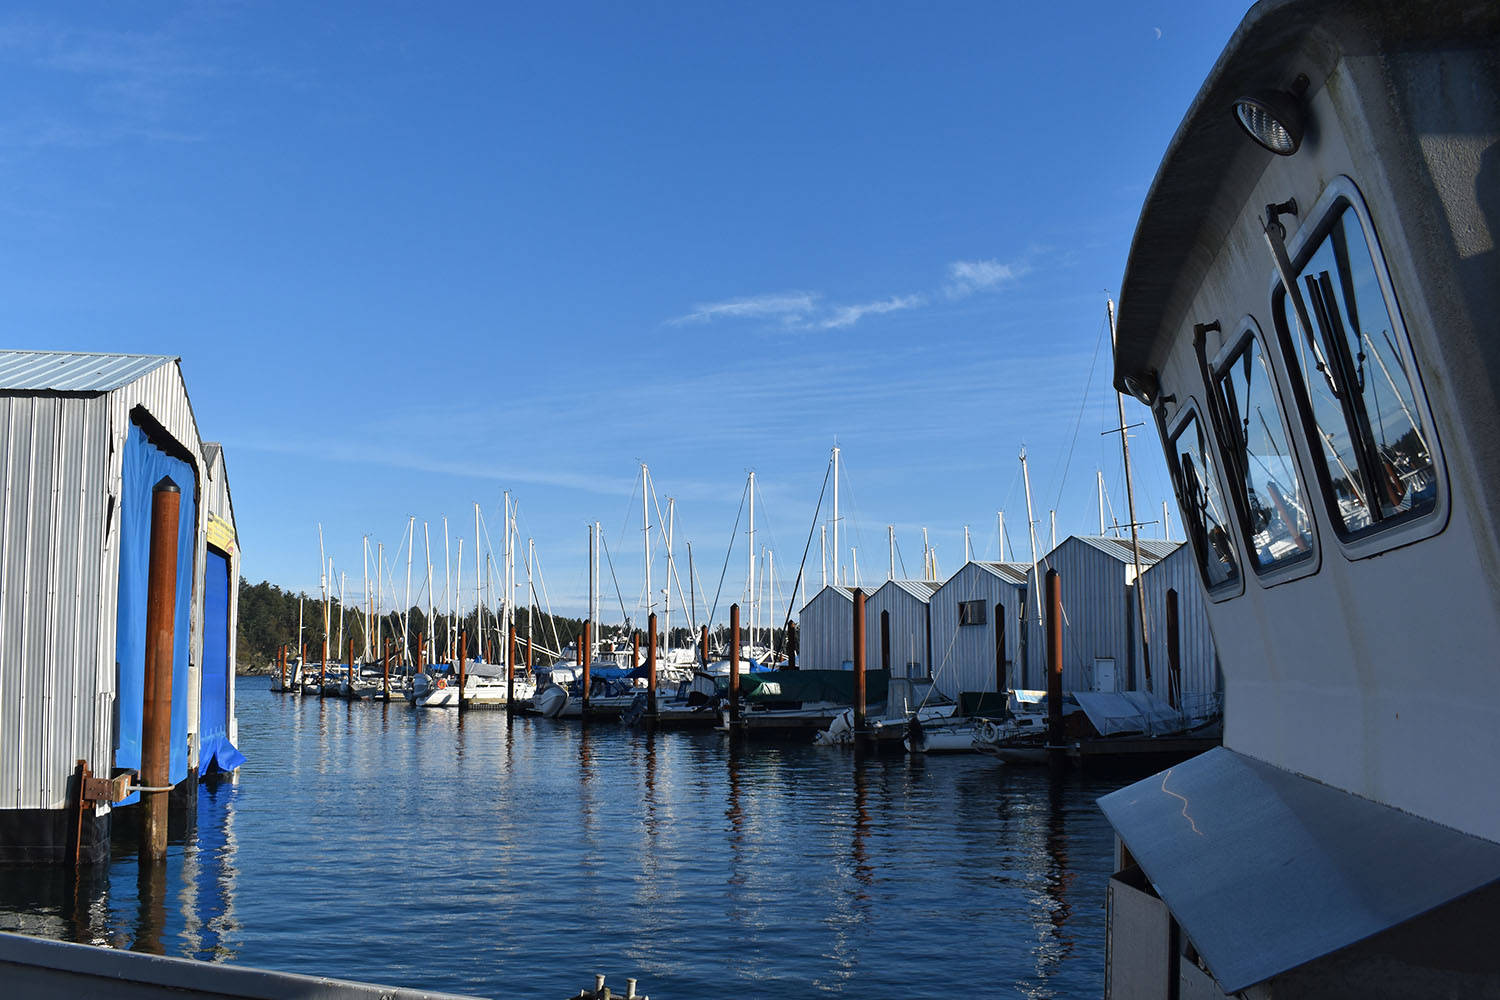 BC Coroners Service is currently investigating a death at Canoe Cove Marina and Boatyard in North Saanich. (Black Press Media File)